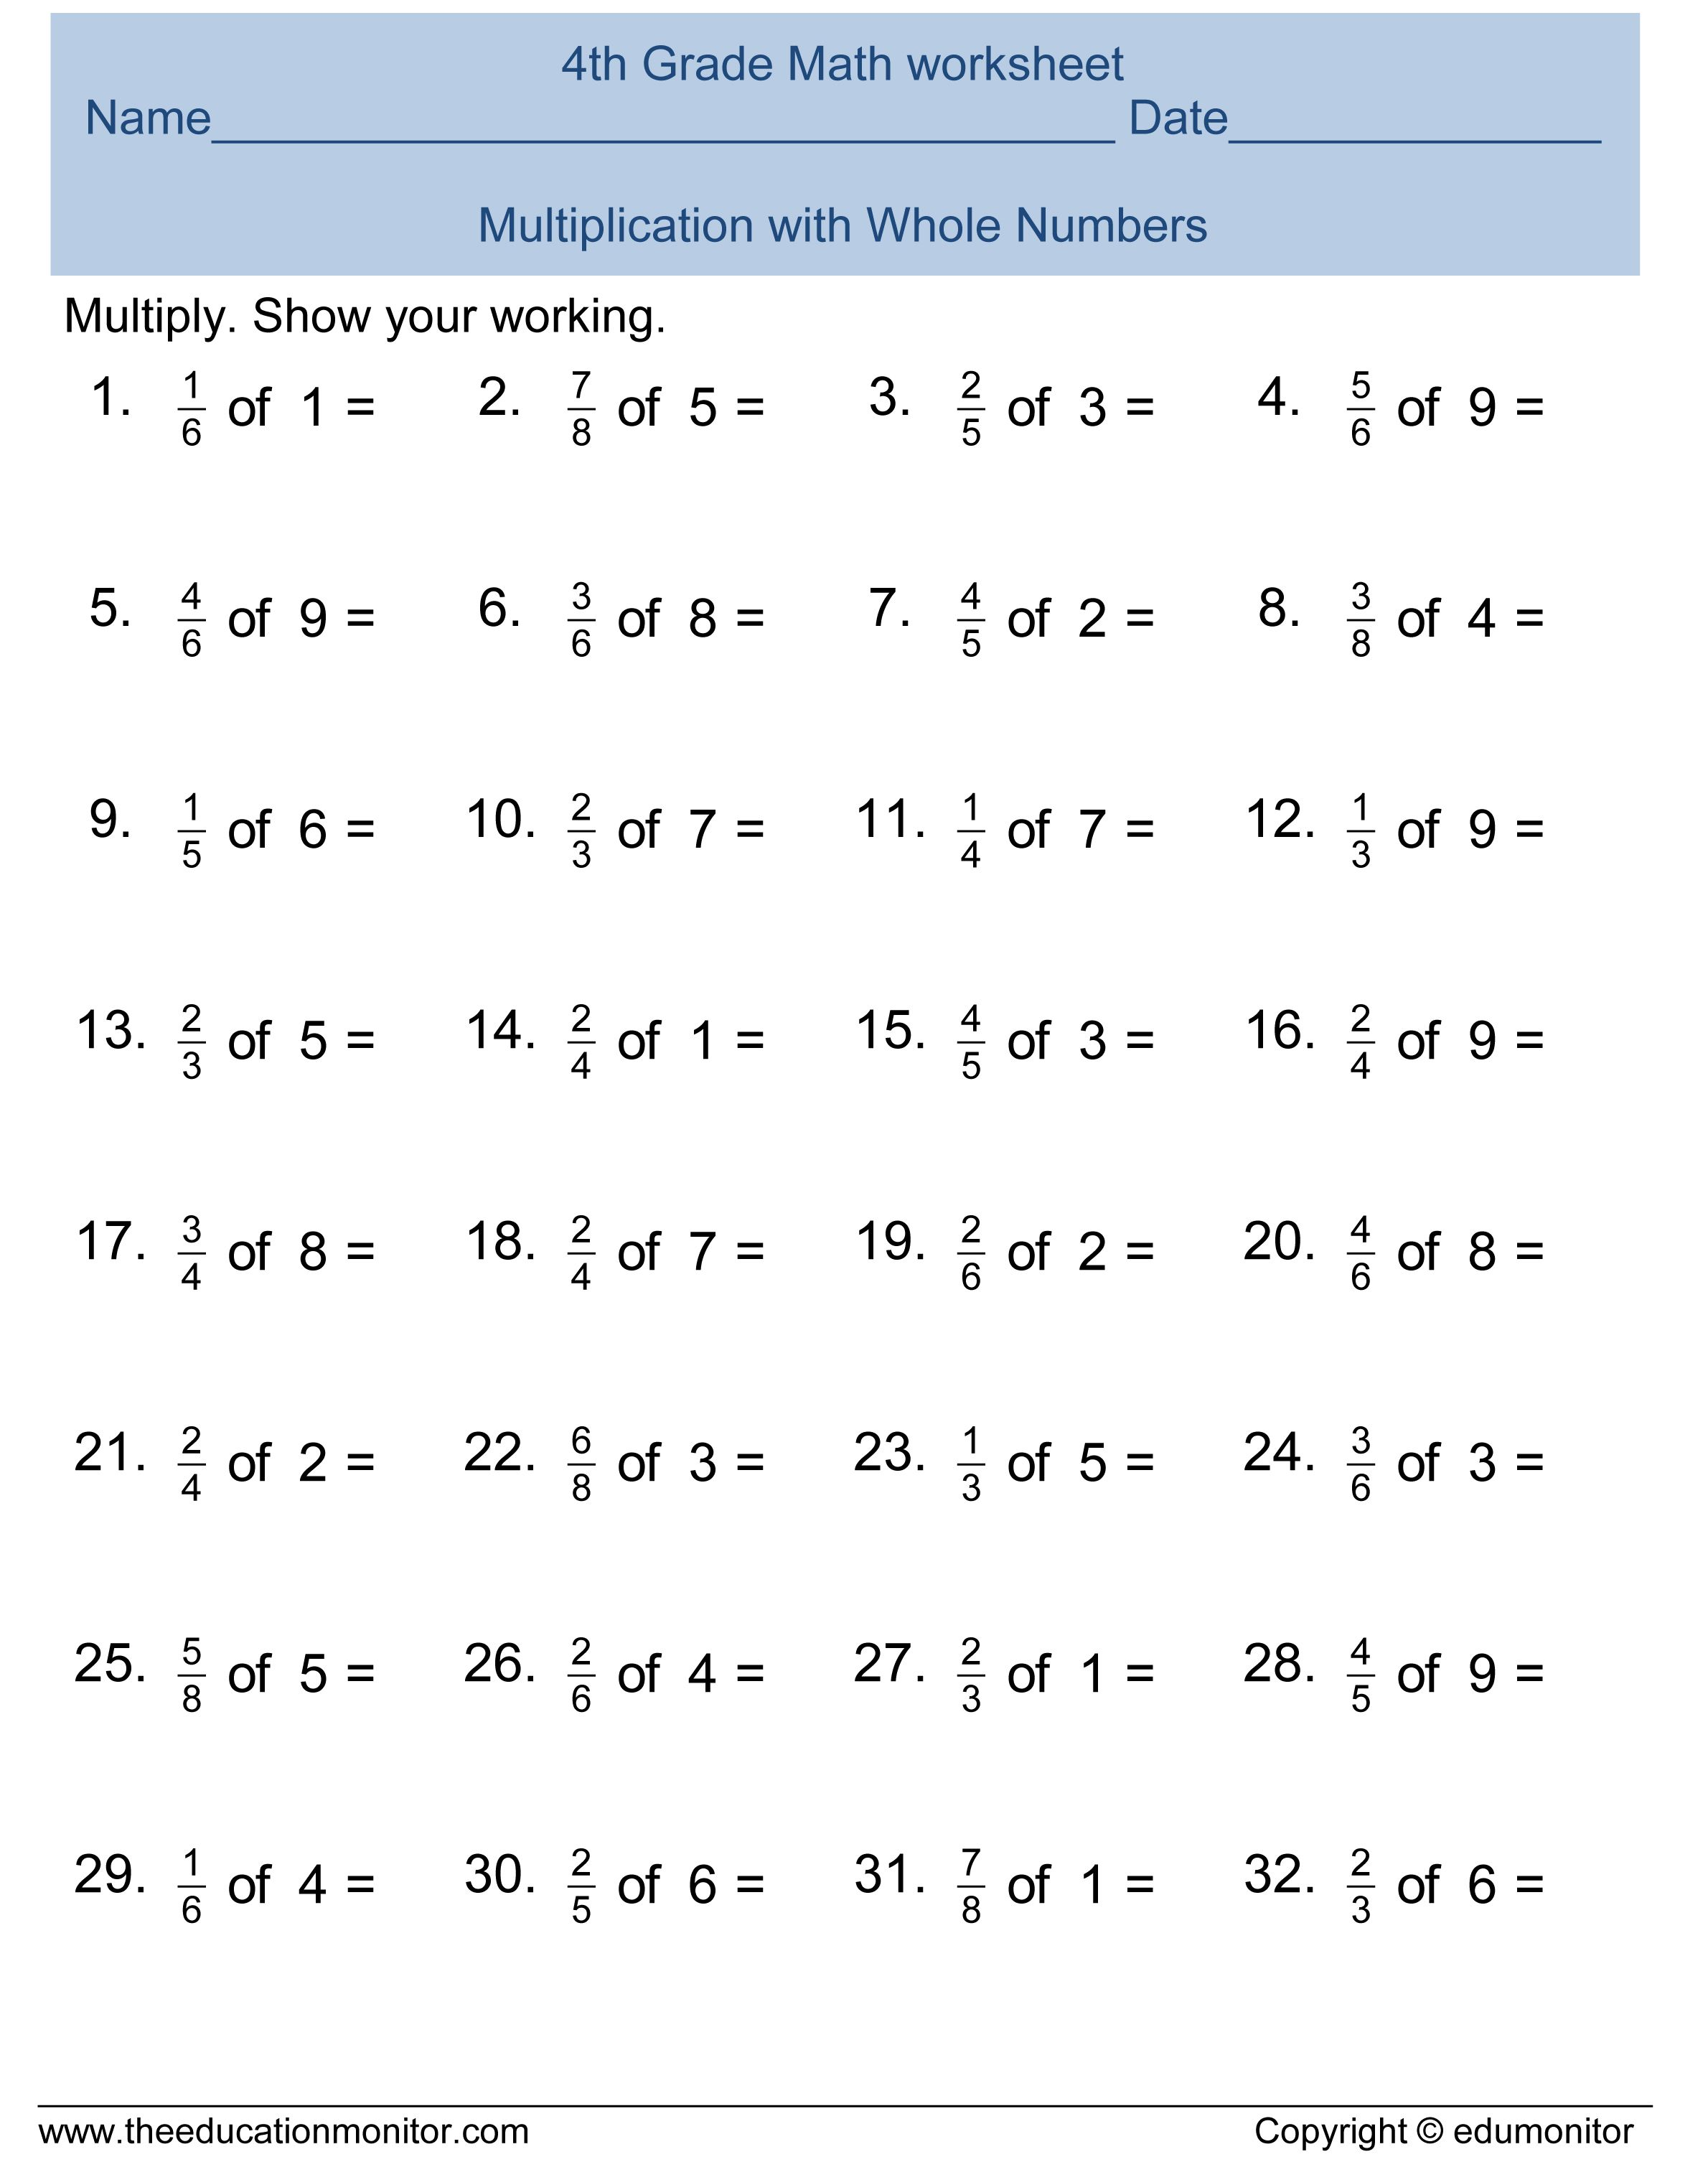 medium resolution of https://dubaikhalifas.com/multiplying-fractions-worksheet-grade-4-awesome-worksheet/